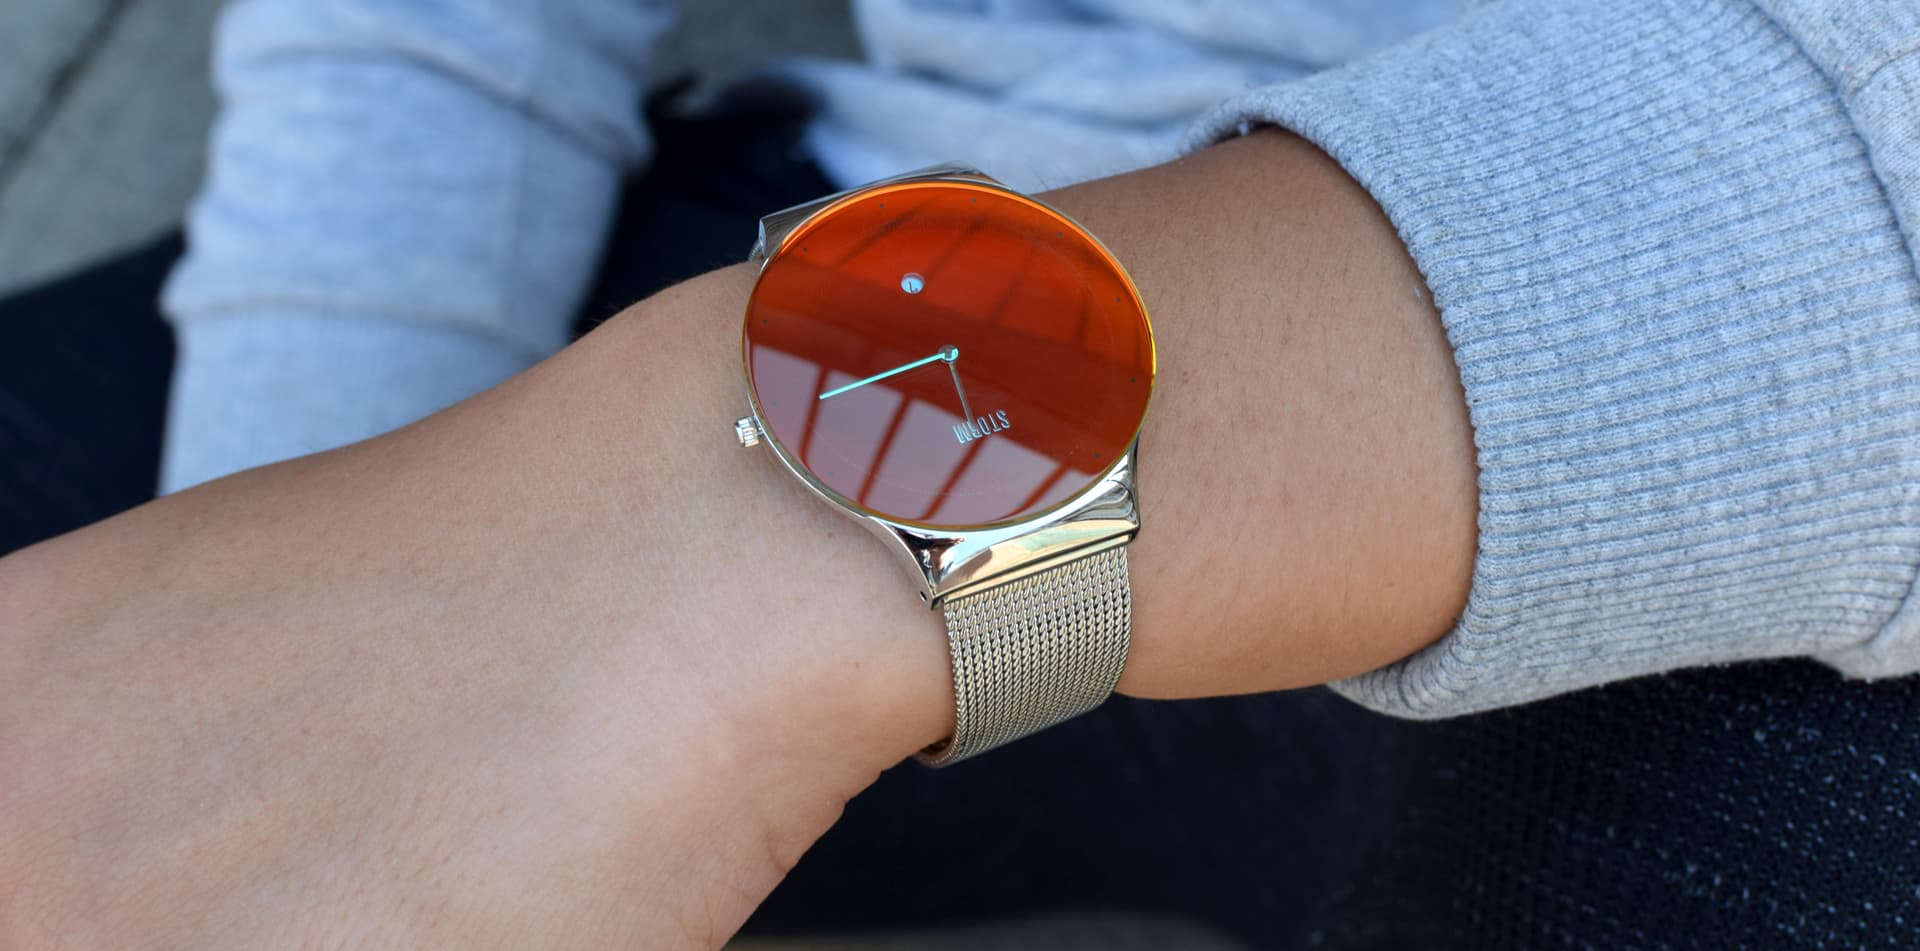 New STORM Watches For Women